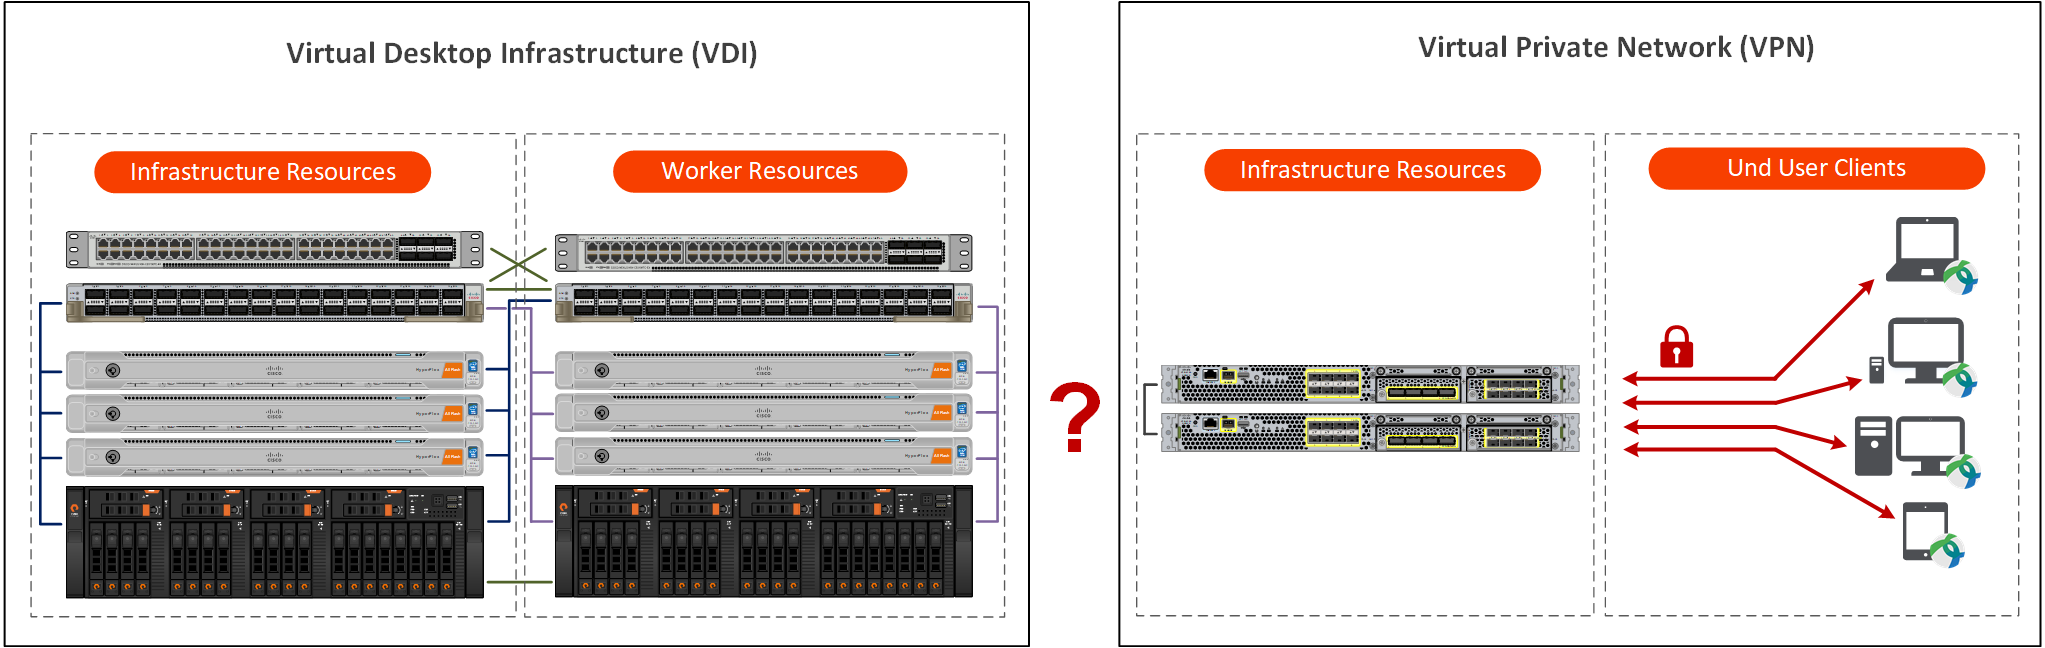 VDI vs VPN Infrastructure